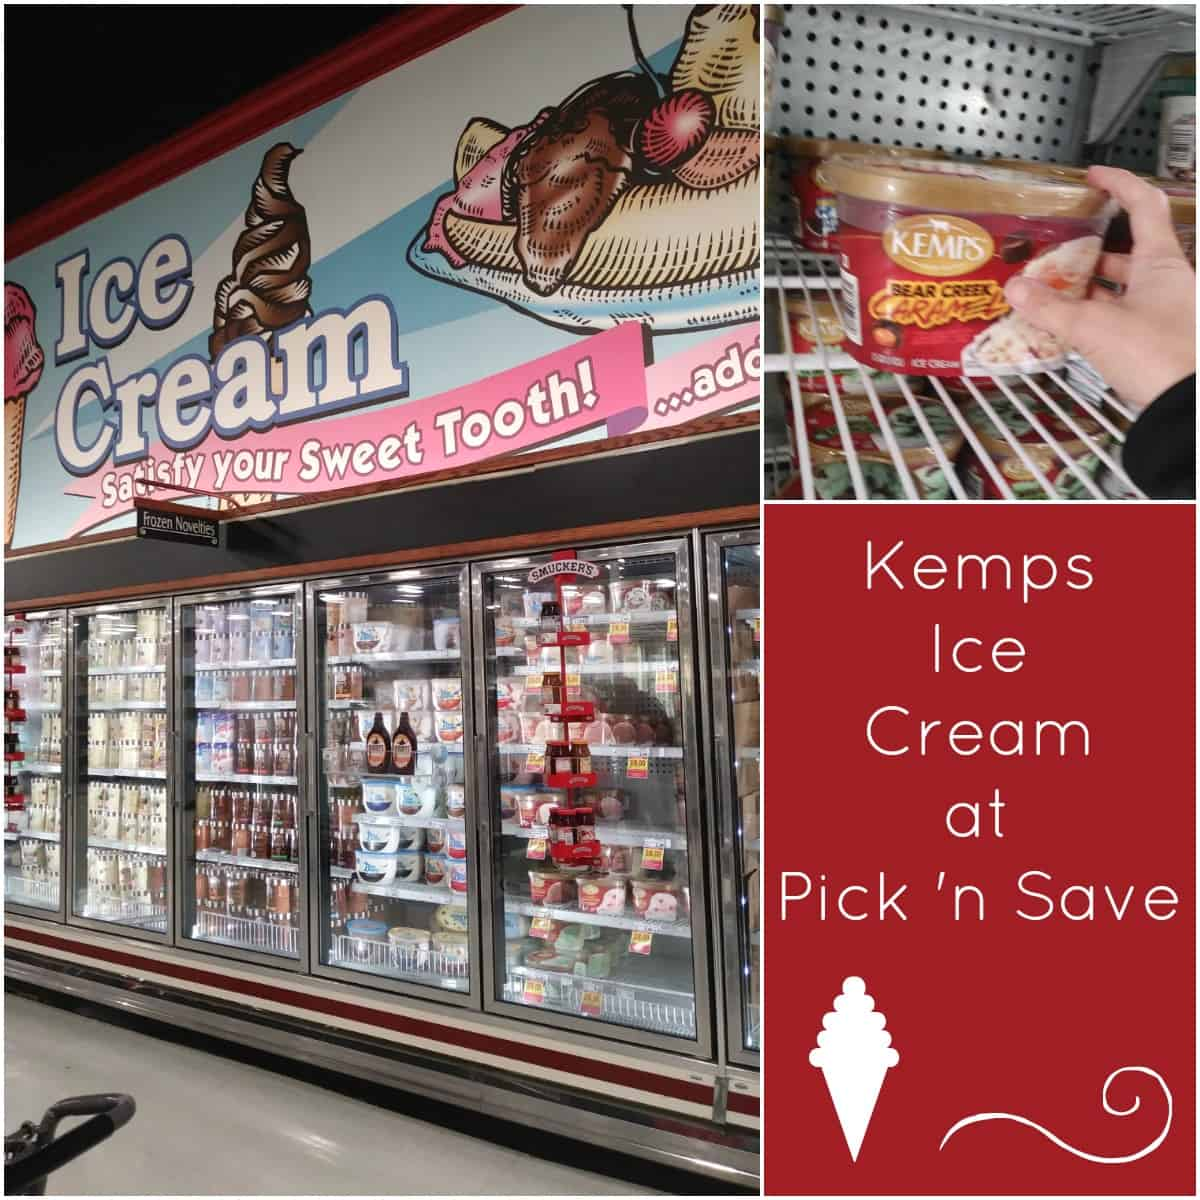 Kemps Ice Cream at Pick n Save